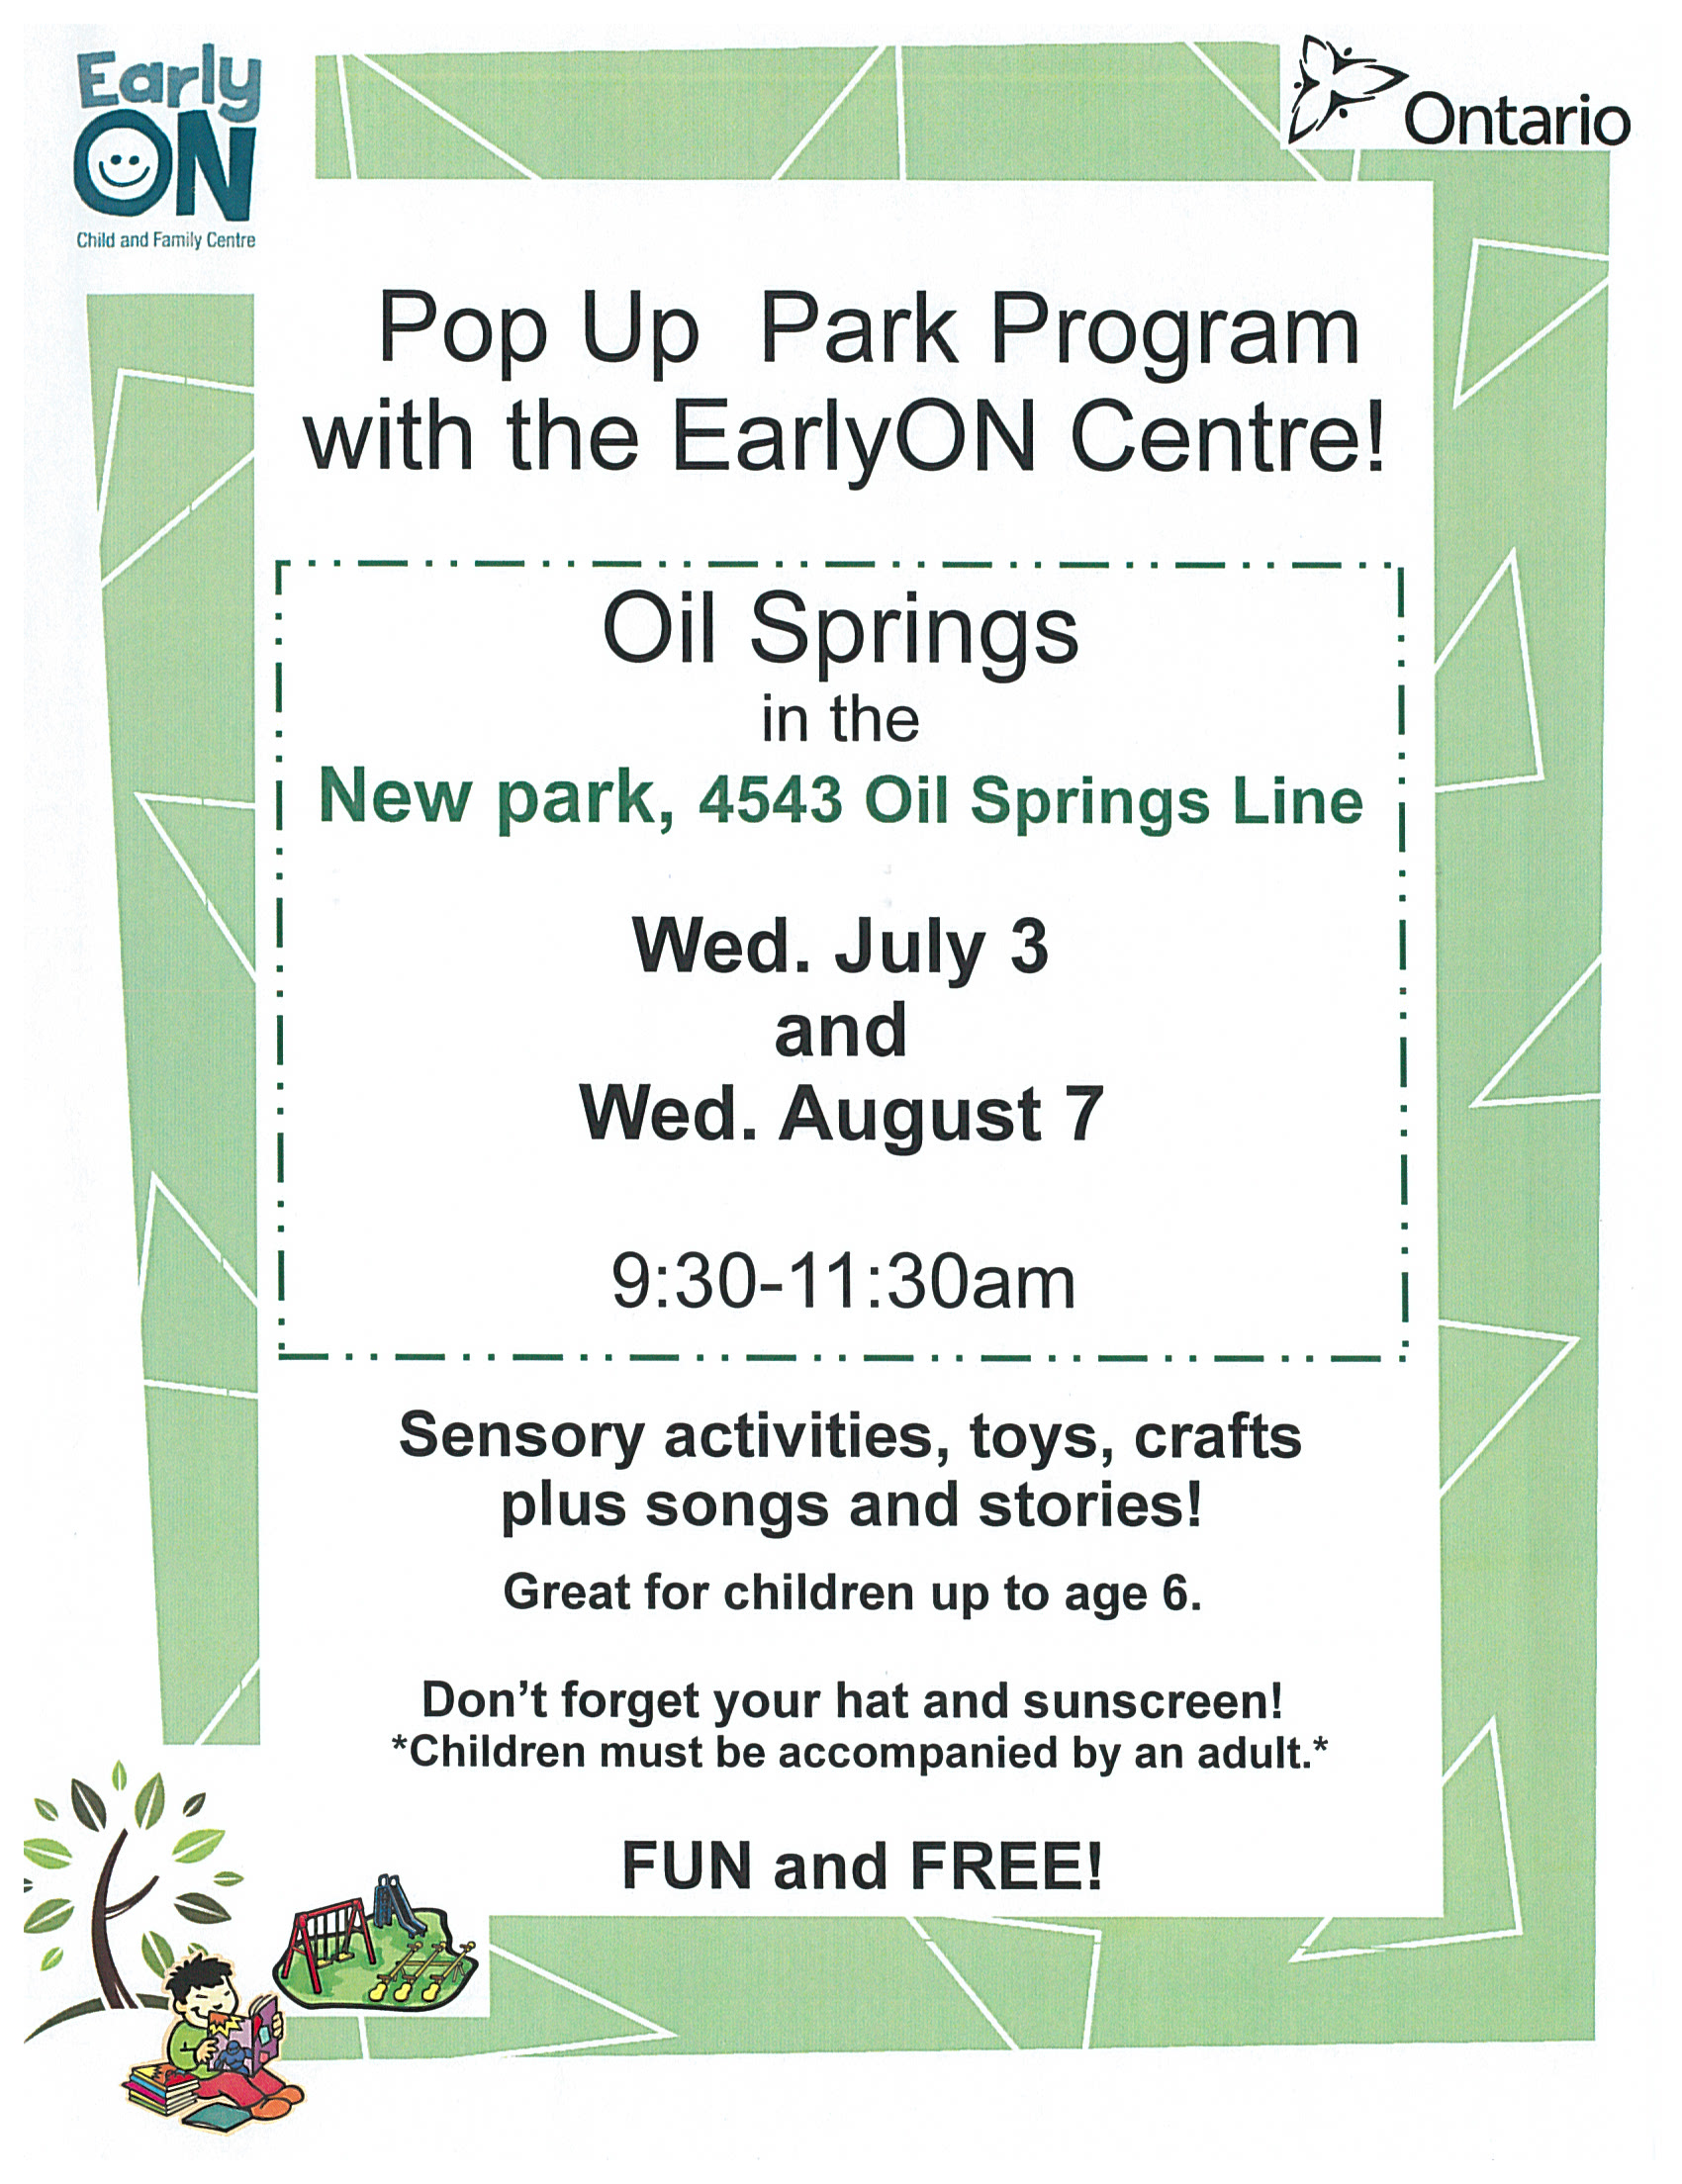 Pop Up Park Program